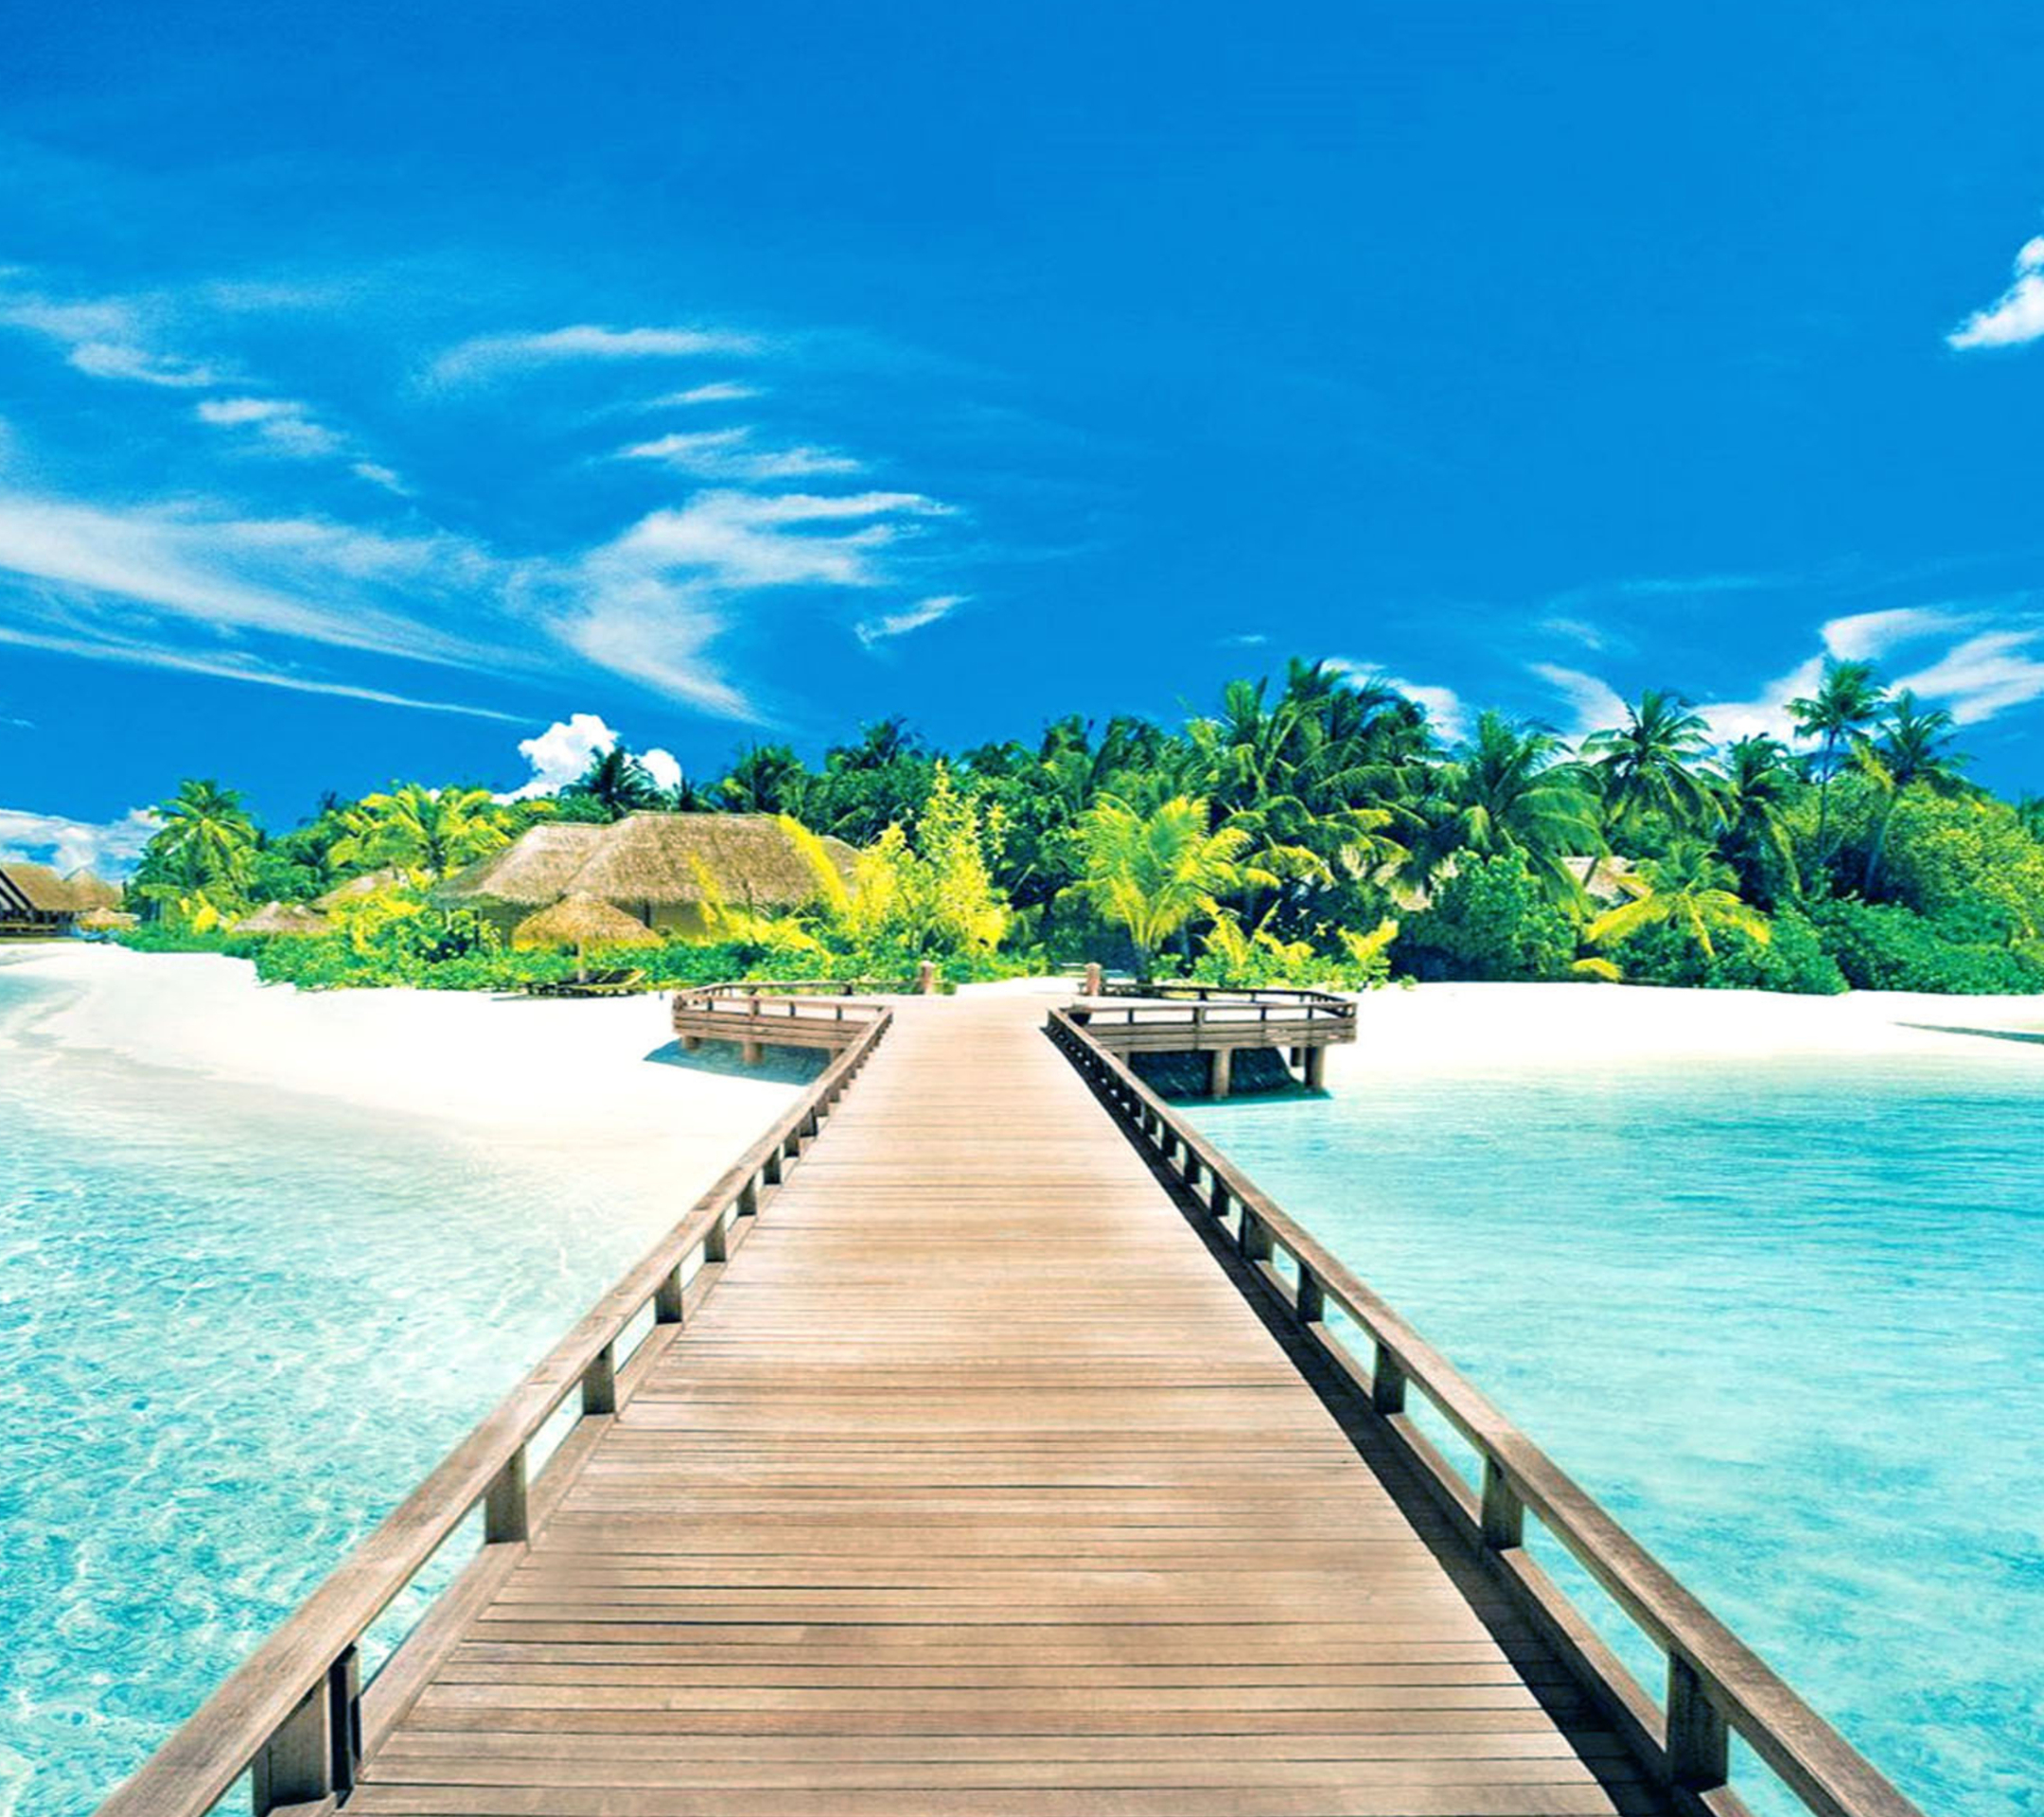 Island Beach Wallpaper: Beautiful Island Pictures For Wallpaper